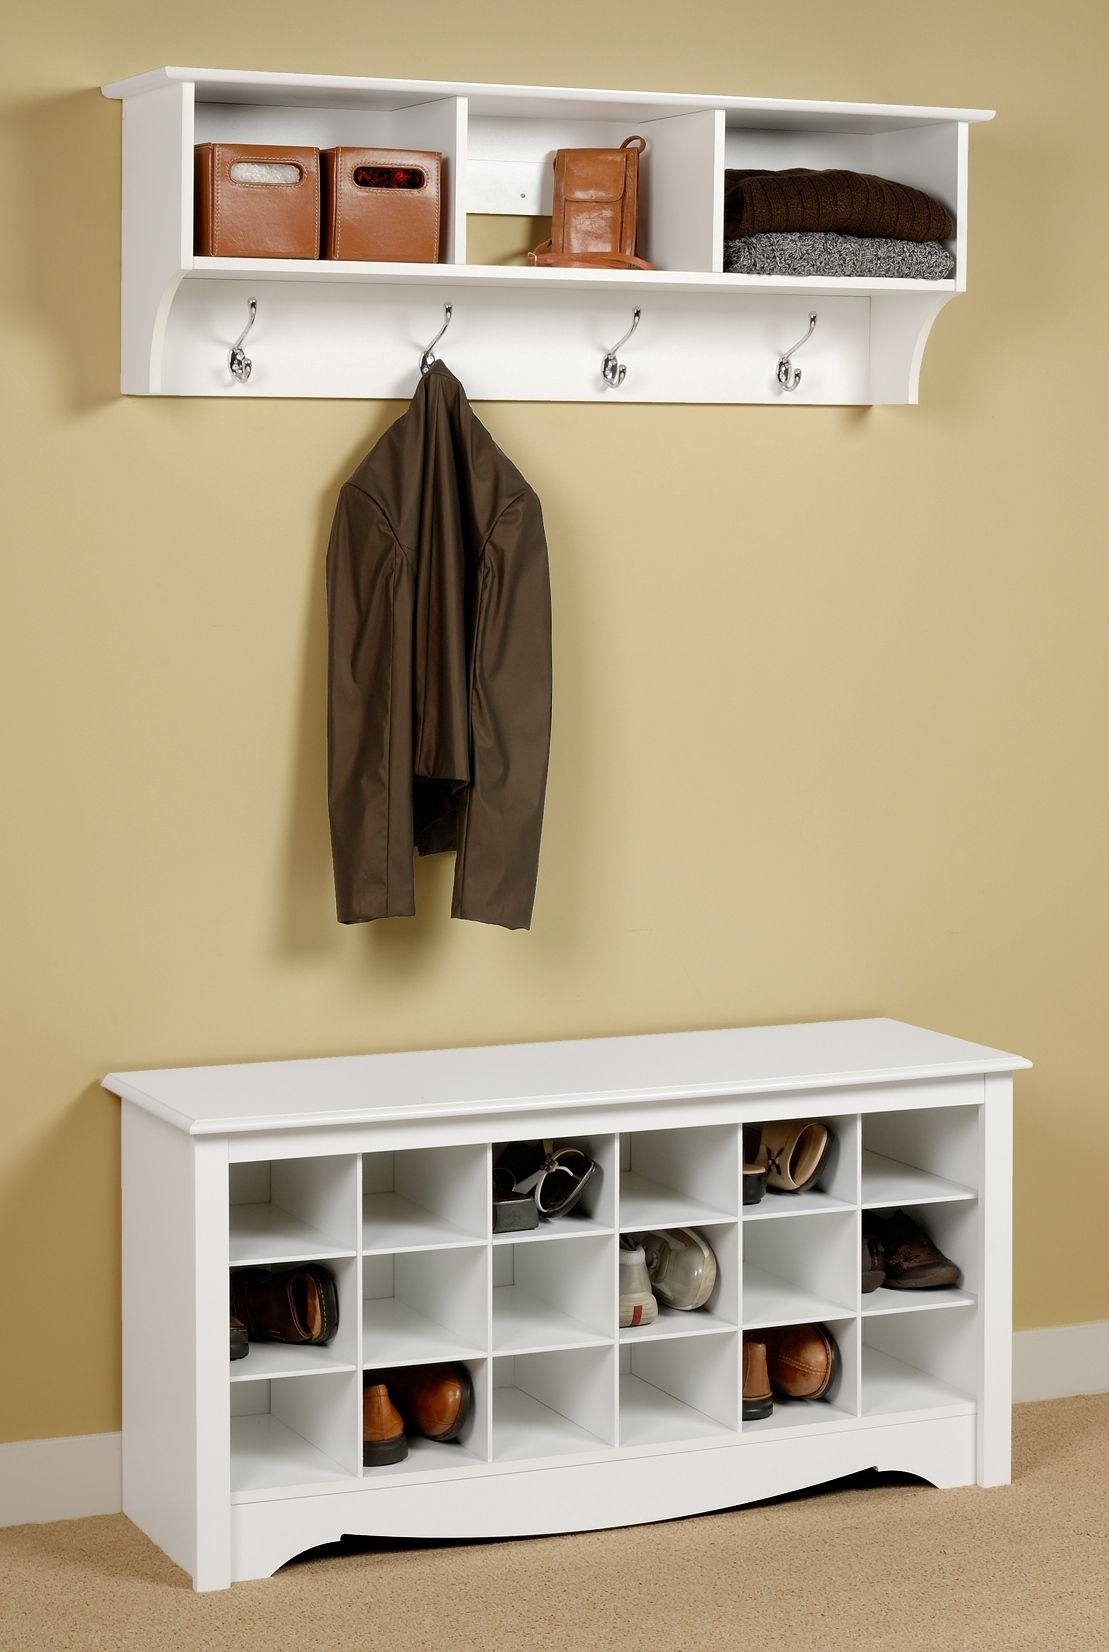 Picture of Prepac Entryway Shoe Storage Bench & Wall Shelf Set ...